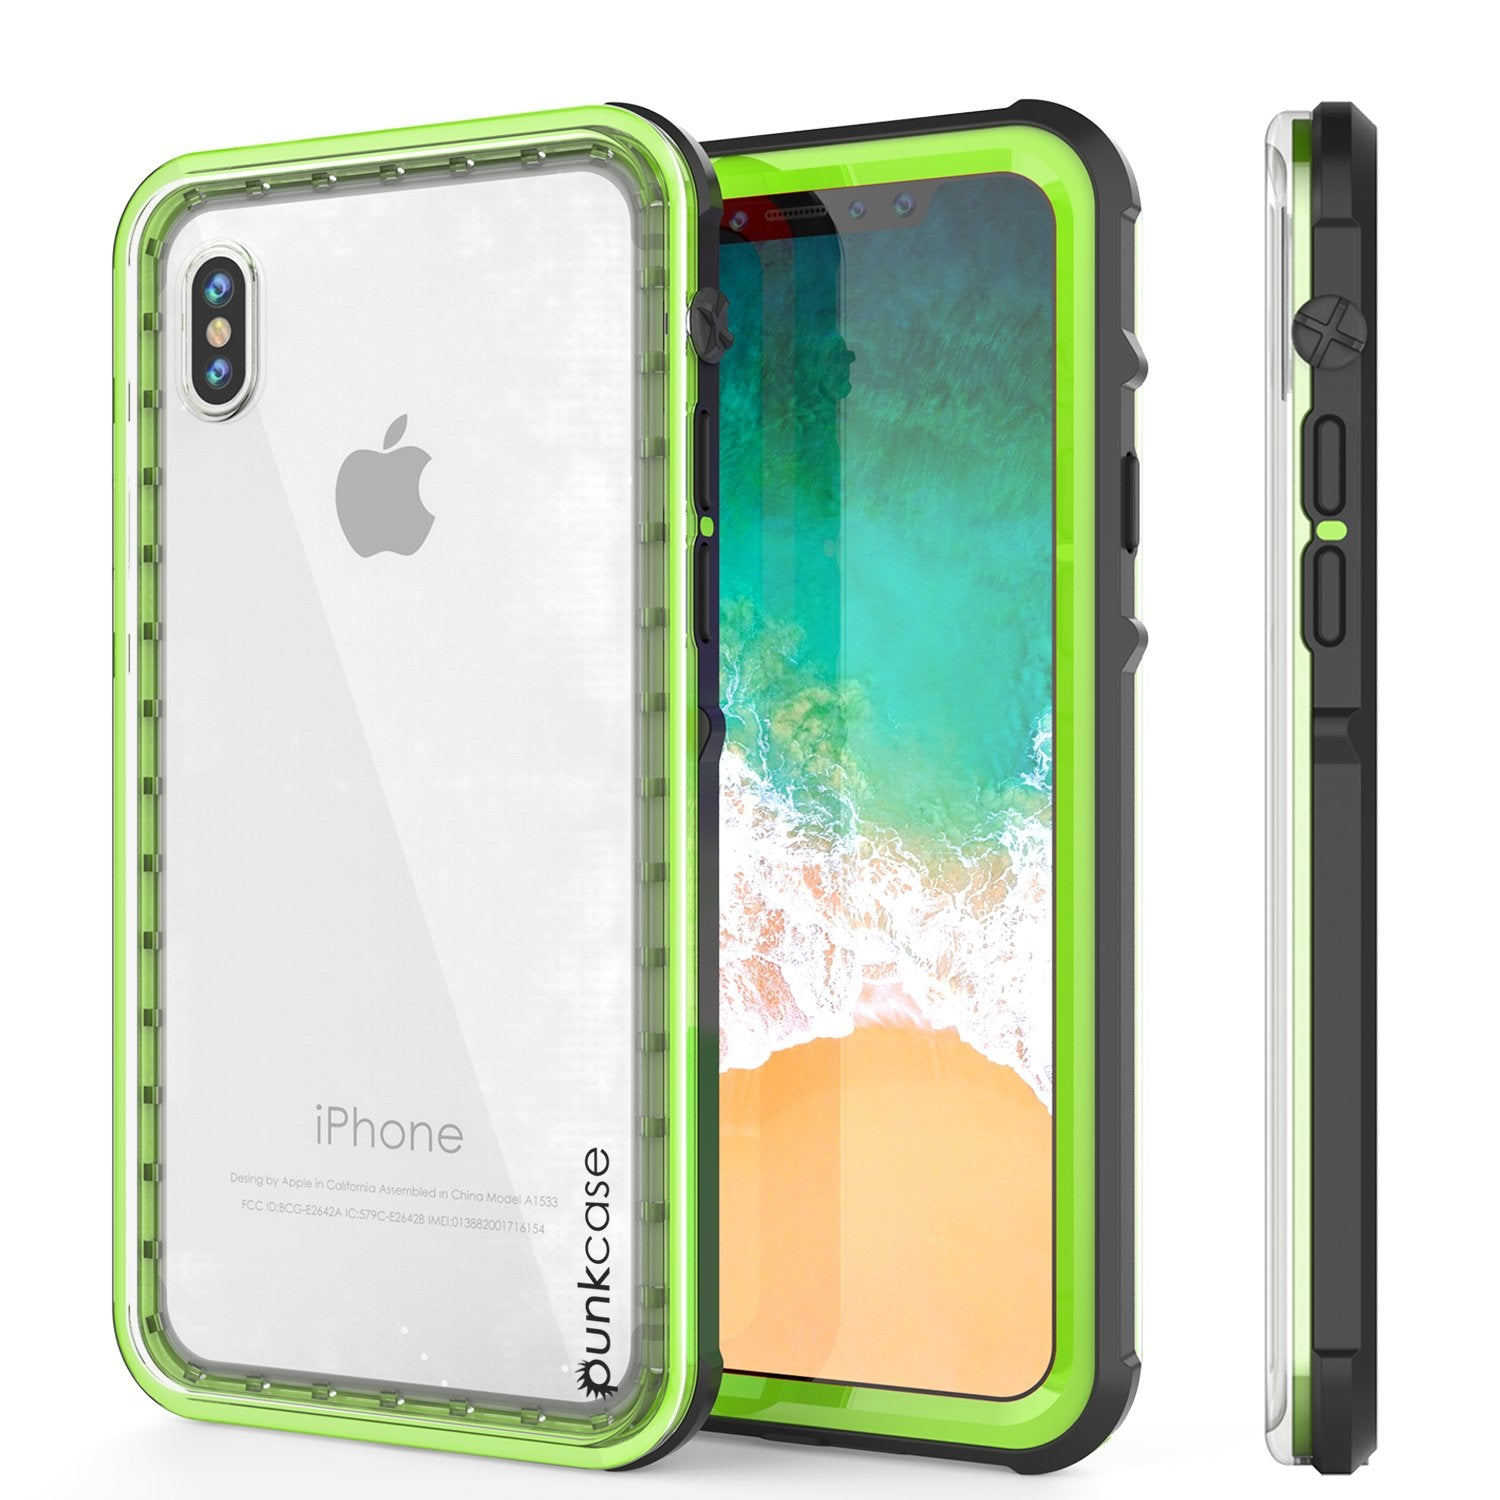 iPhone XS Max Case, PUNKCase [CRYSTAL SERIES] Protective IP68 Certified Cover [Light Green]